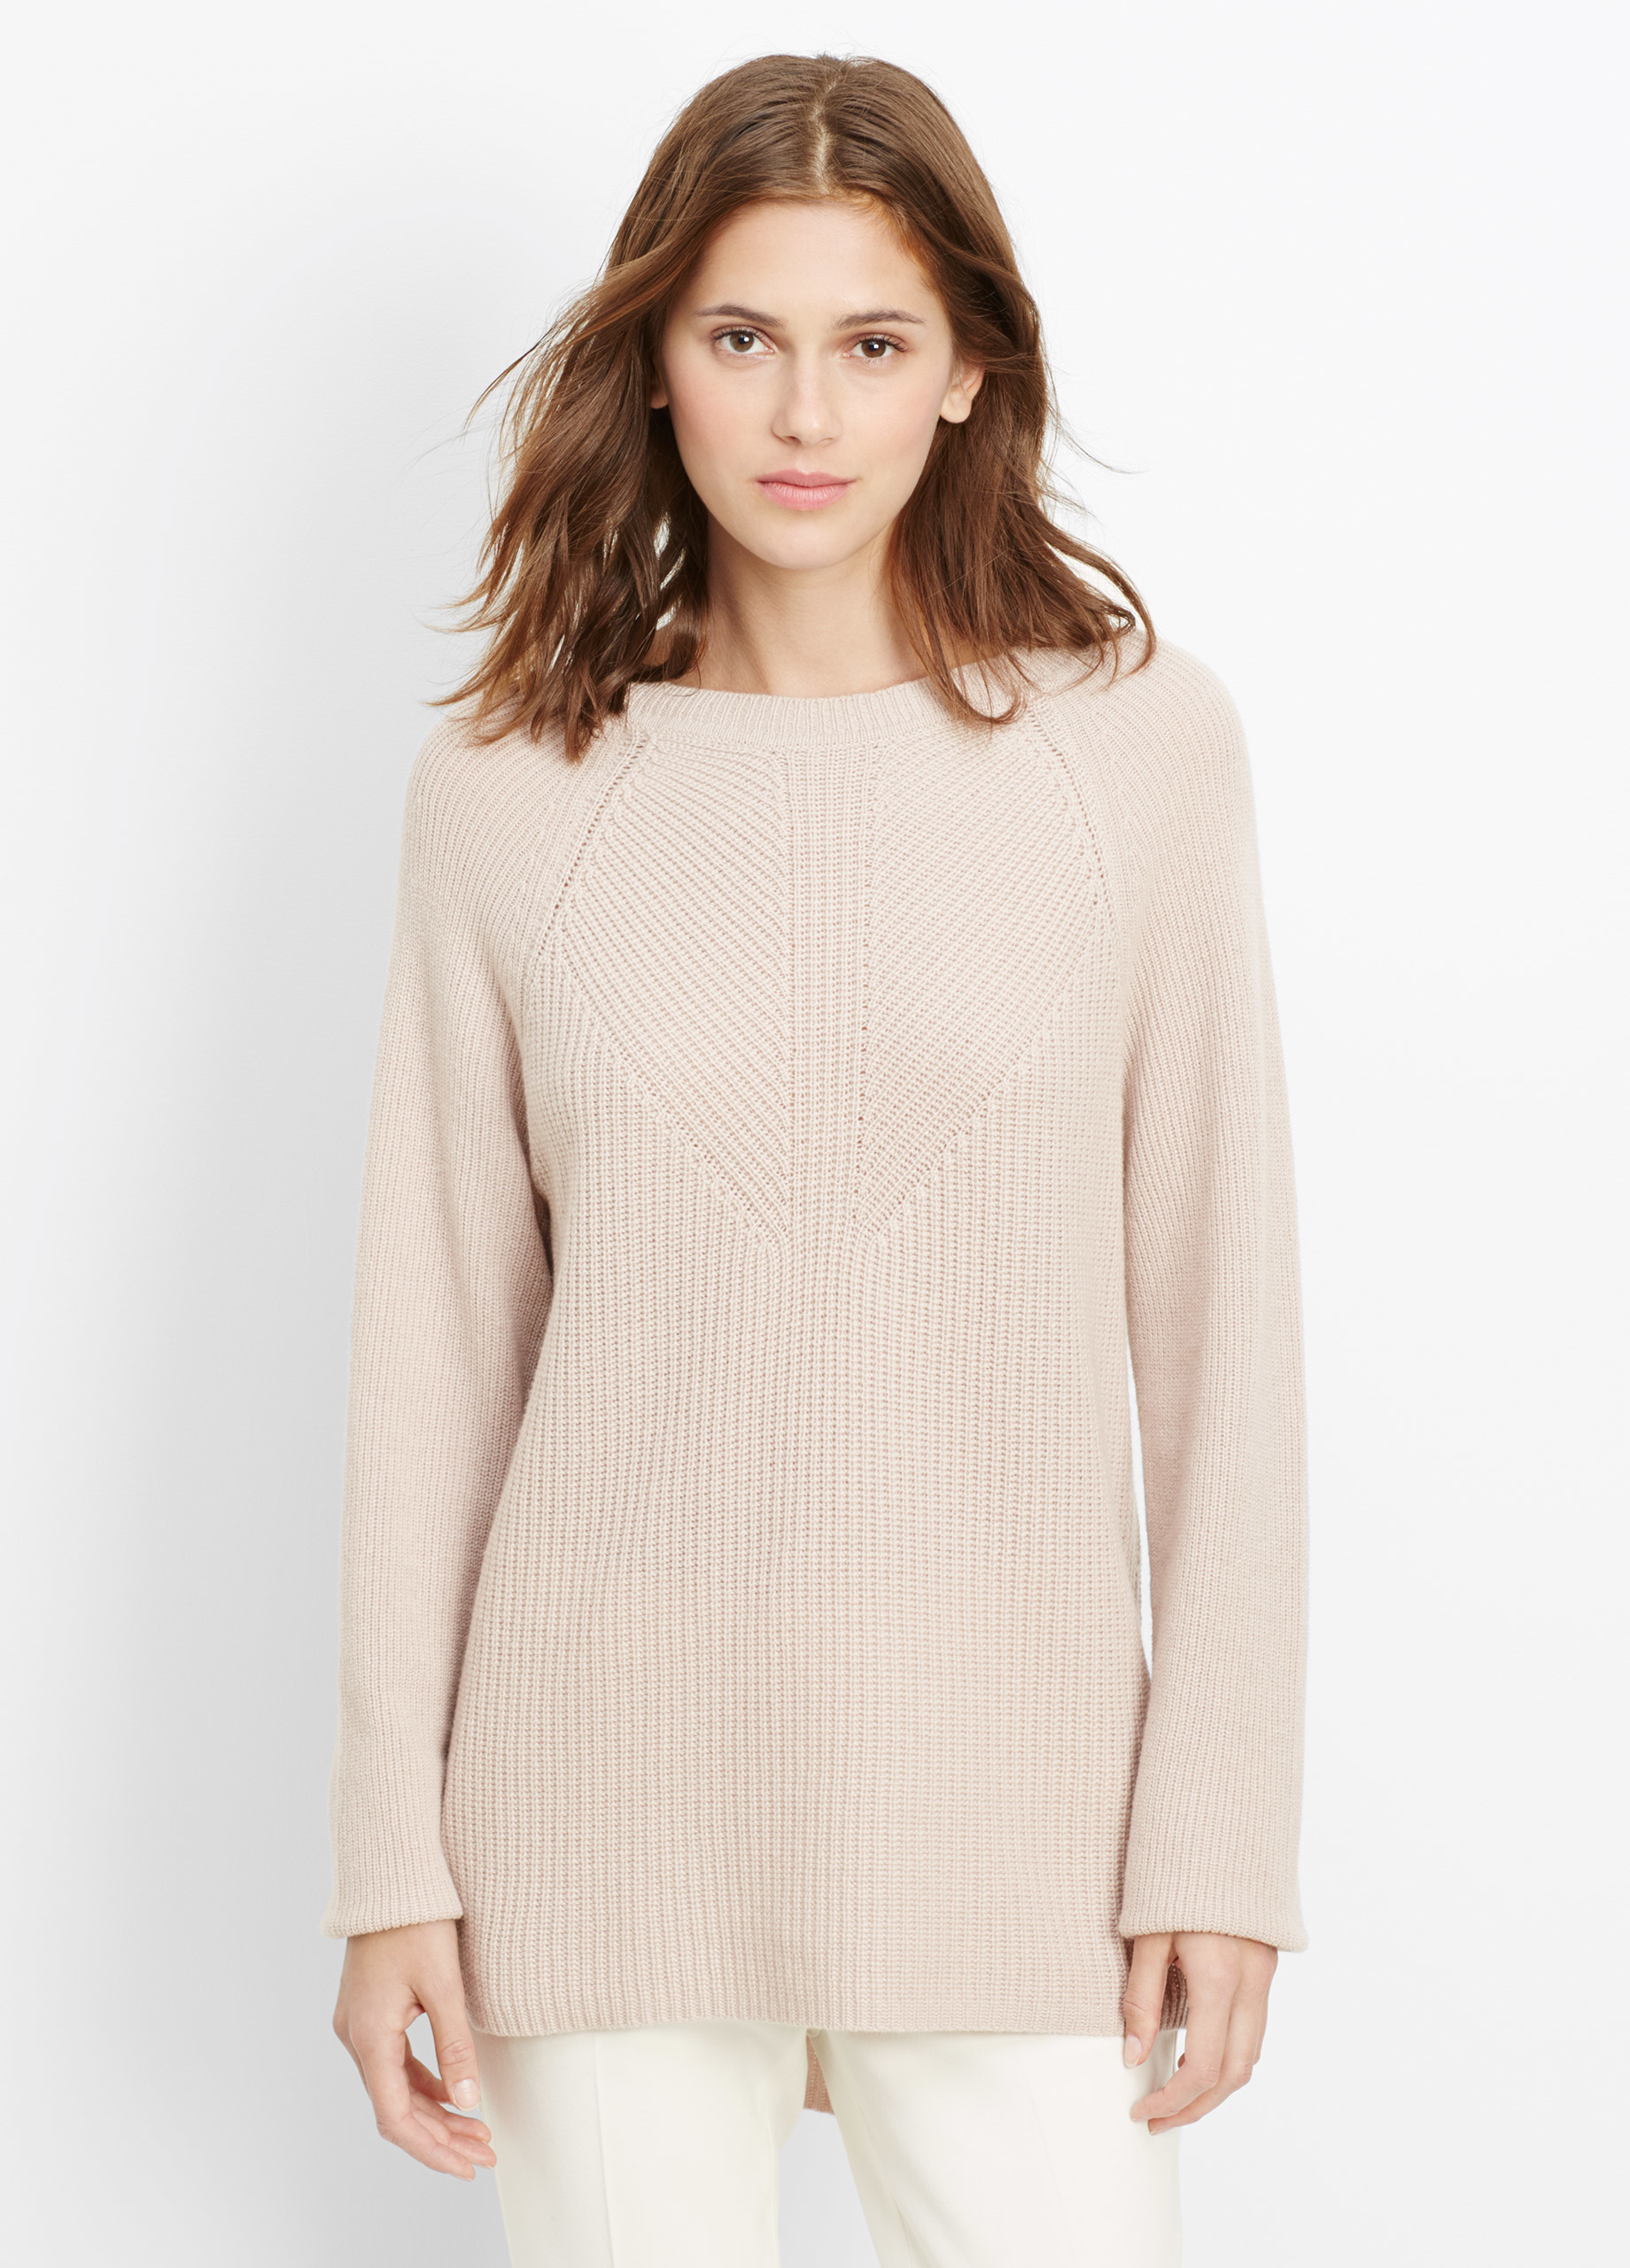 Vince Wool Cashmere Directional Rib Sweater in Natural | Lyst